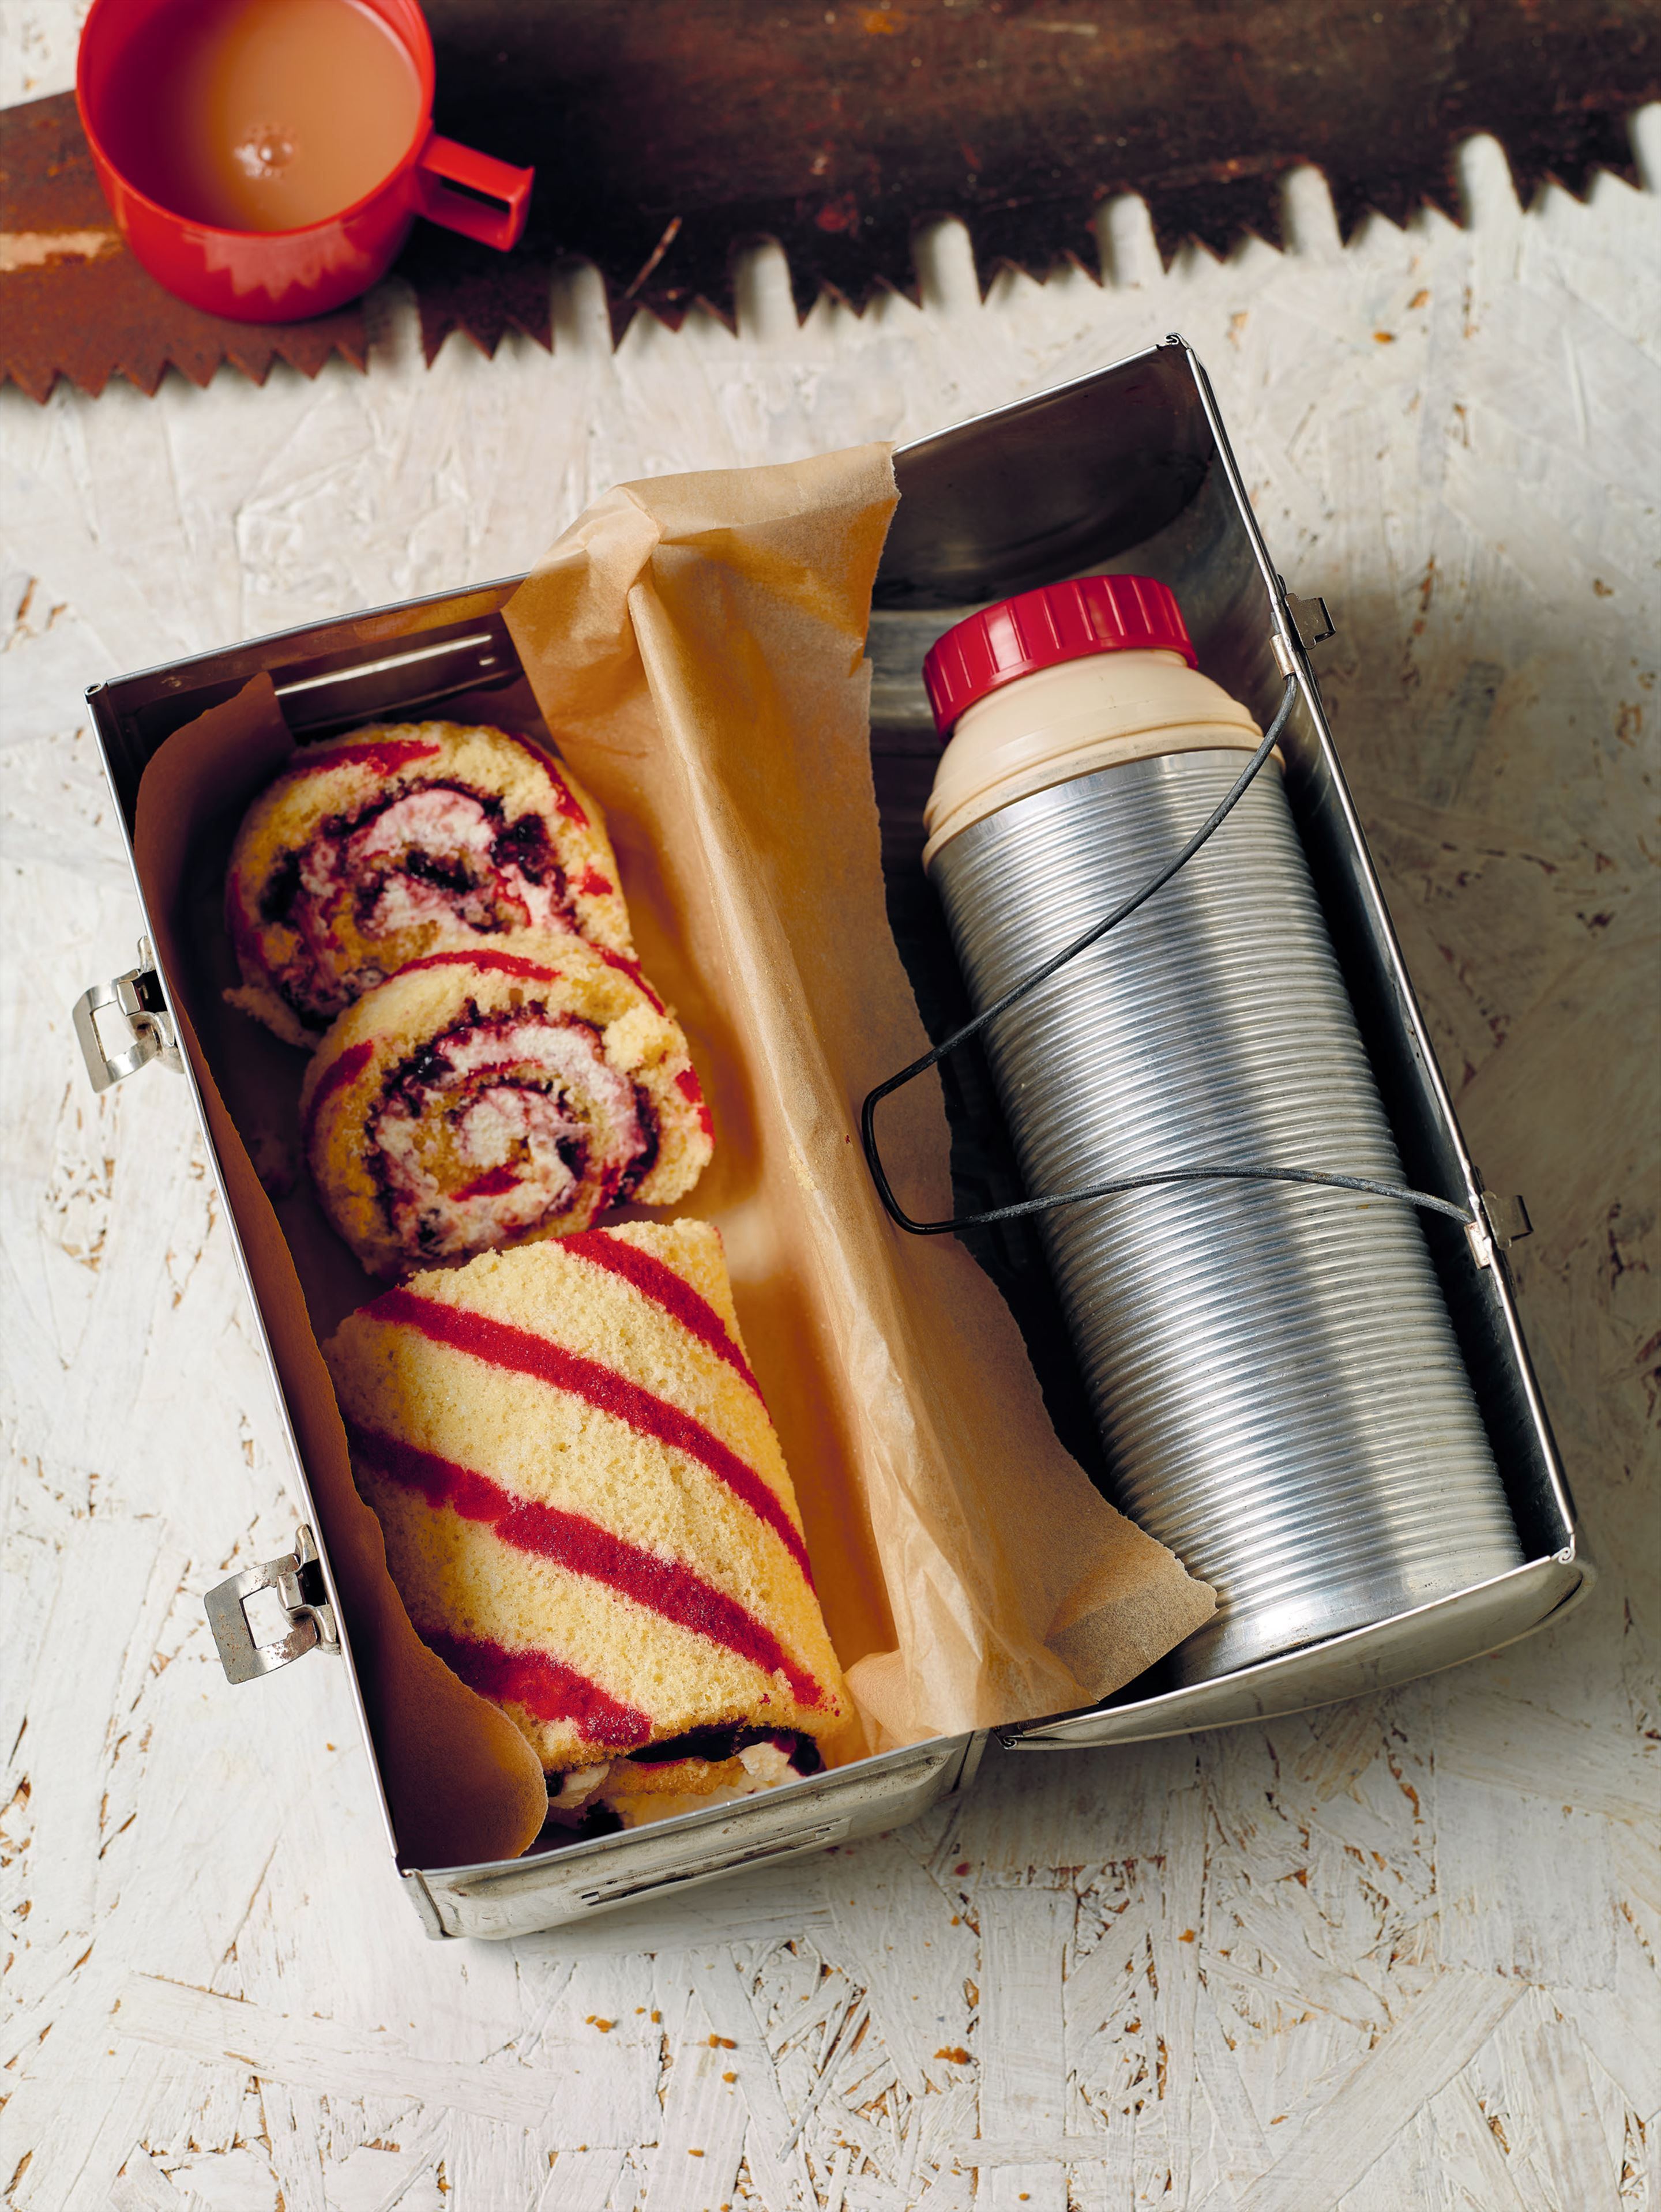 Cherry and almond Swiss roll